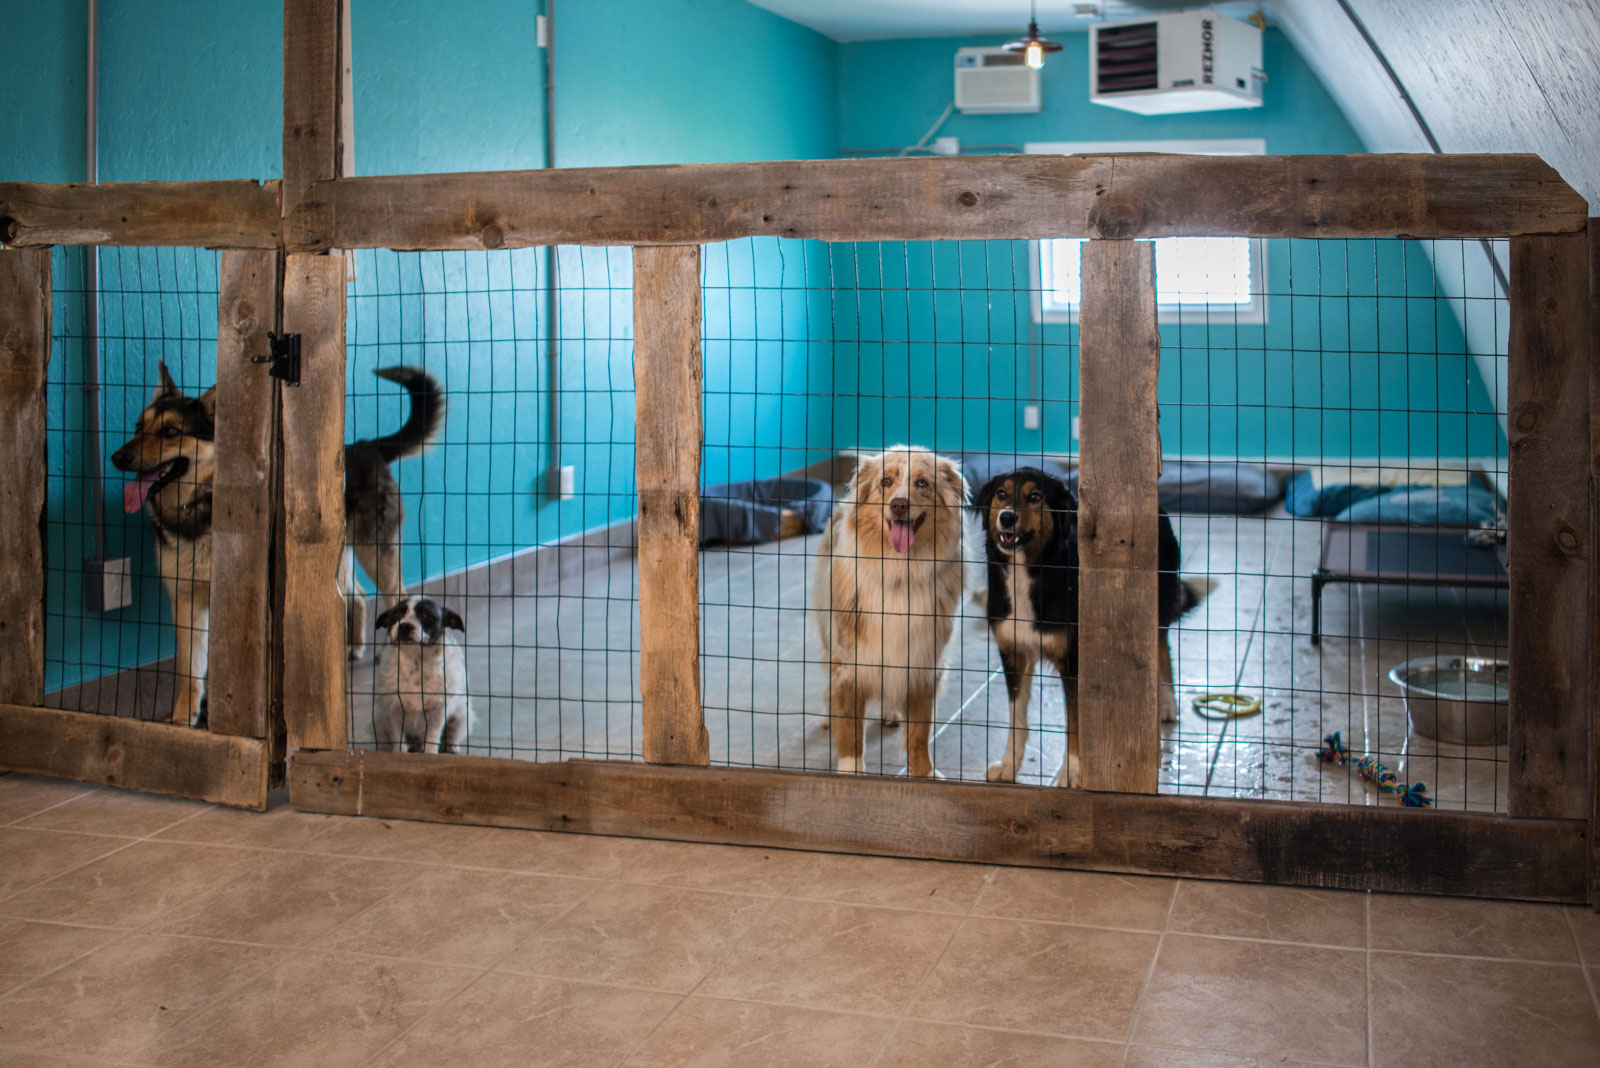 Dogs at day care